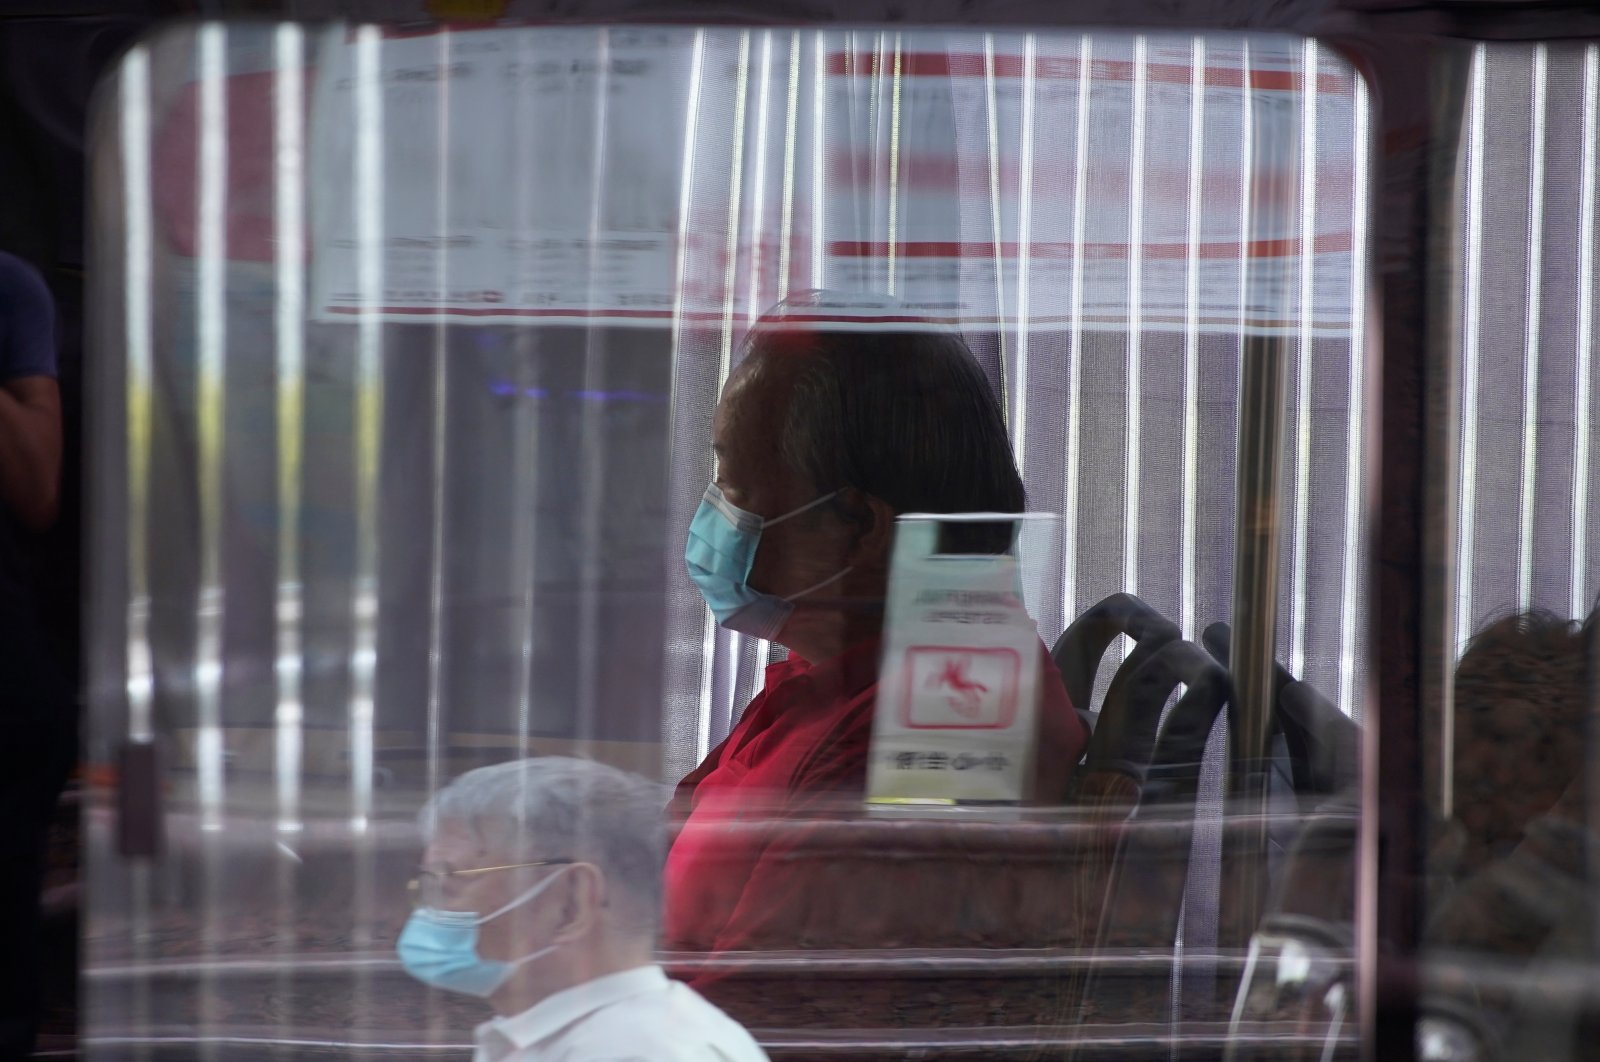 A man wearing a face mask sits on a bus amid the coronavirus disease (COVID-19) outbreak, in Shanghai, China, Aug. 27, 2020. (Reuters Photo)